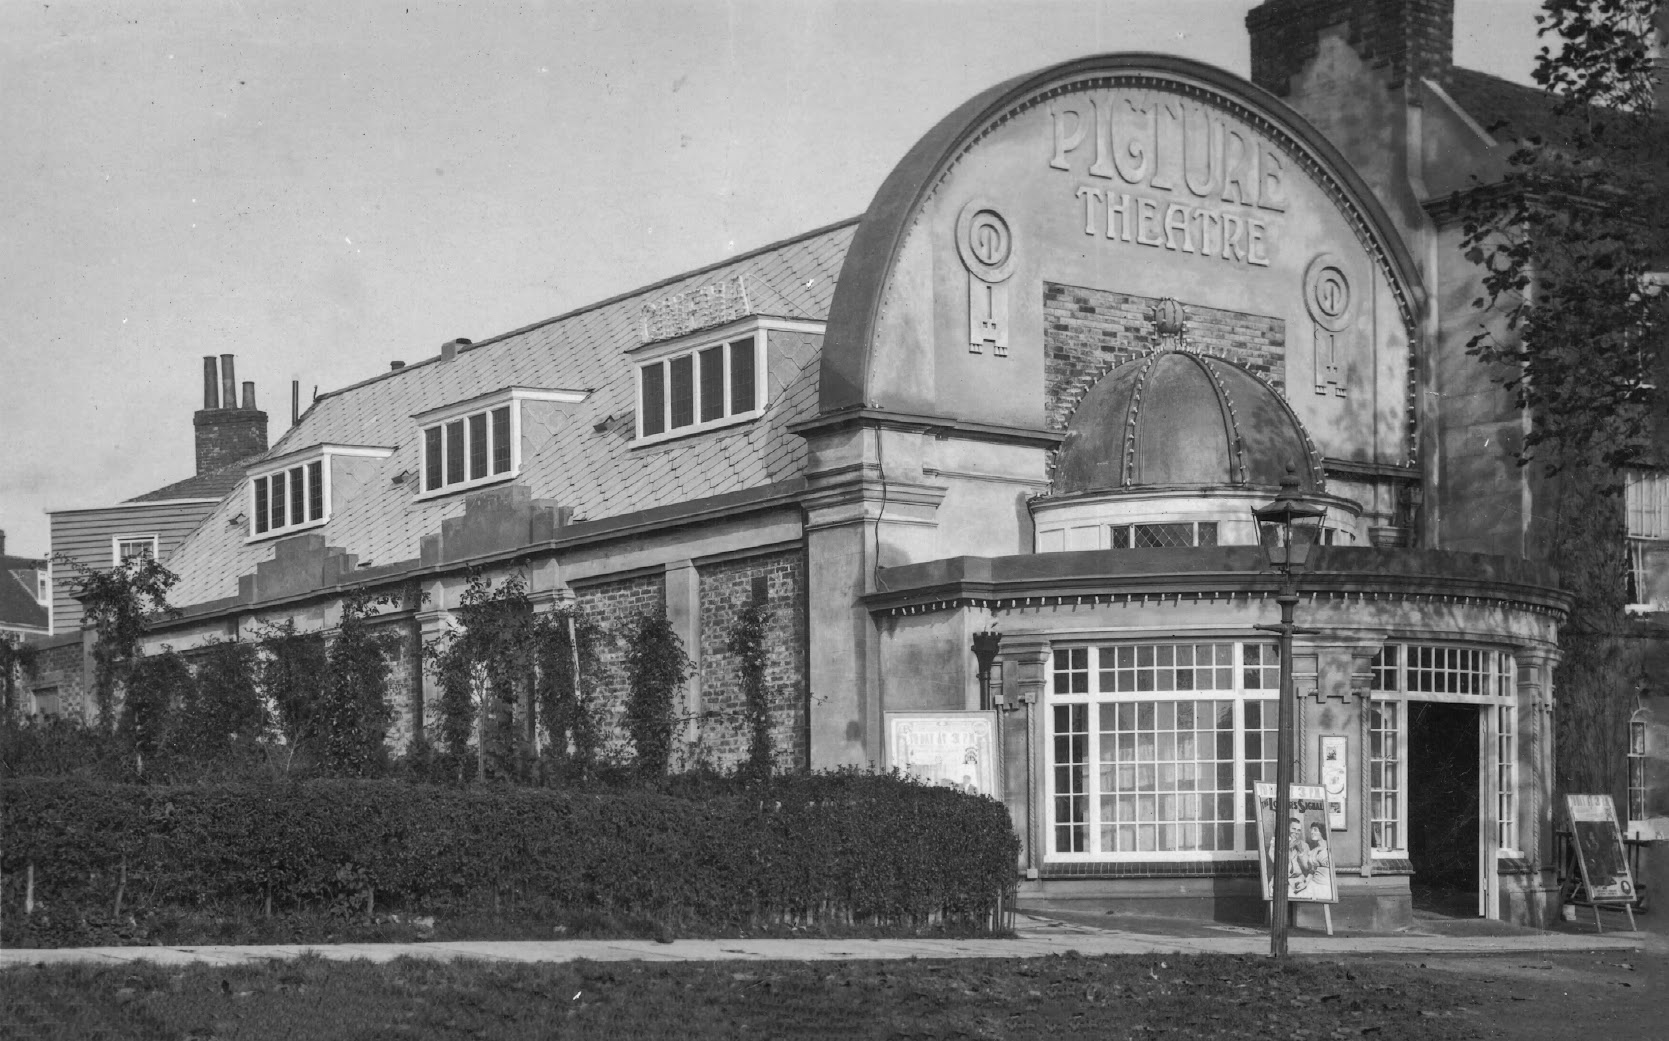 The Electric Palace in Oaks Road opened on 28 September 1912